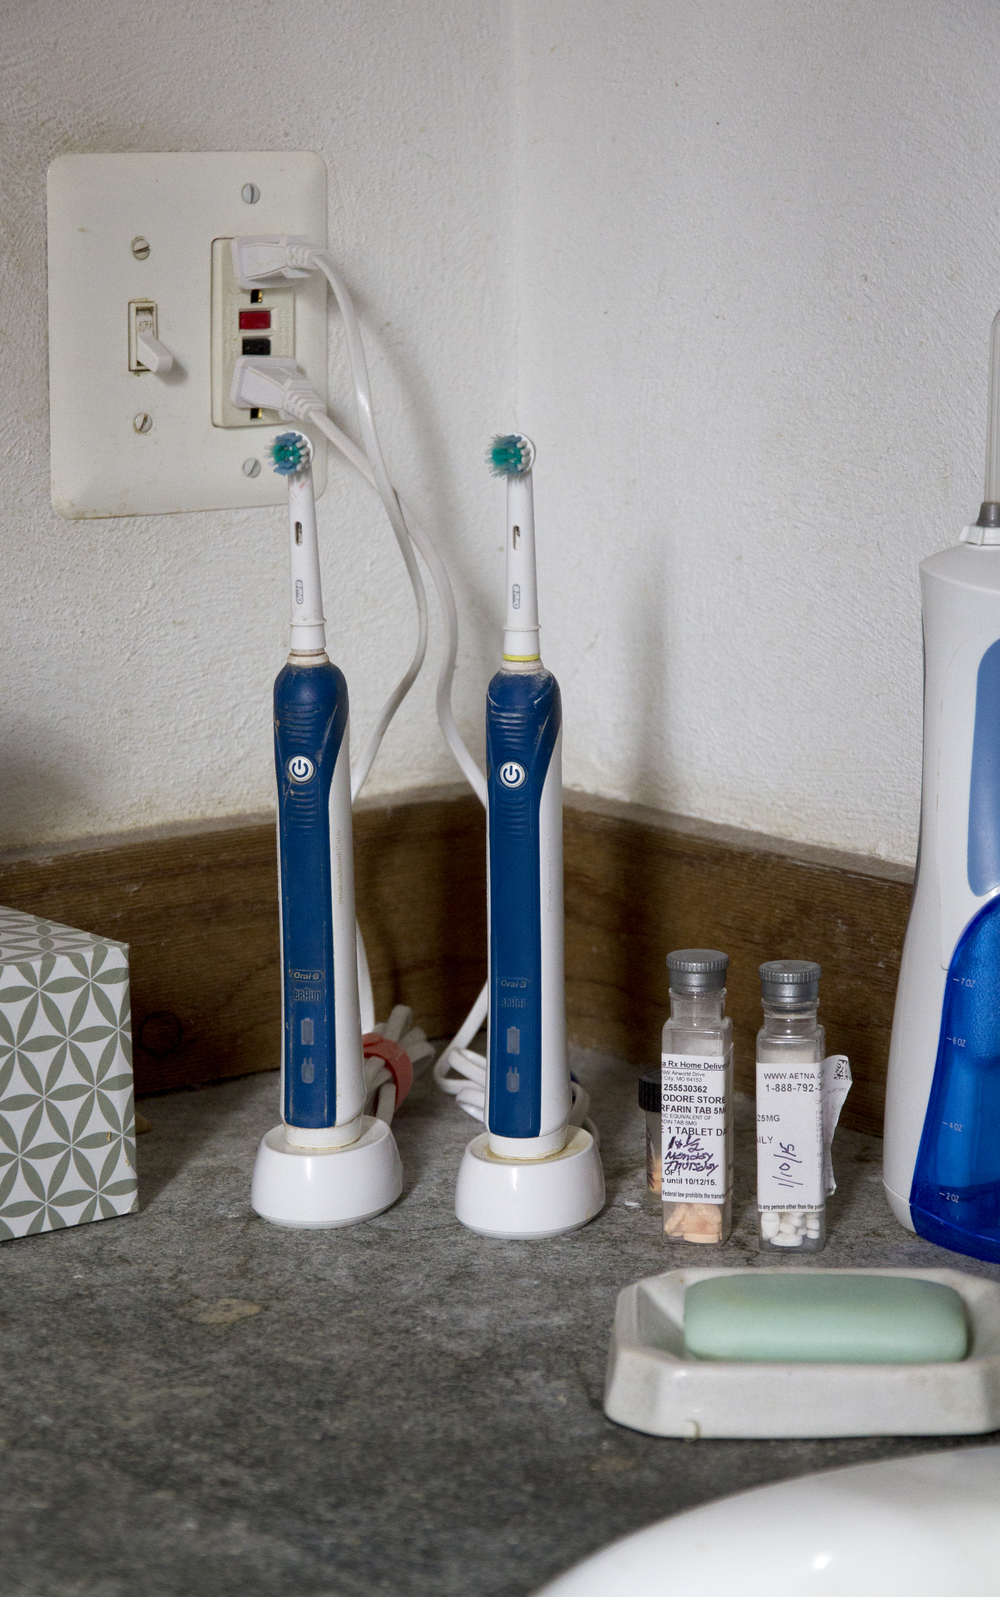 The Toothbrushes